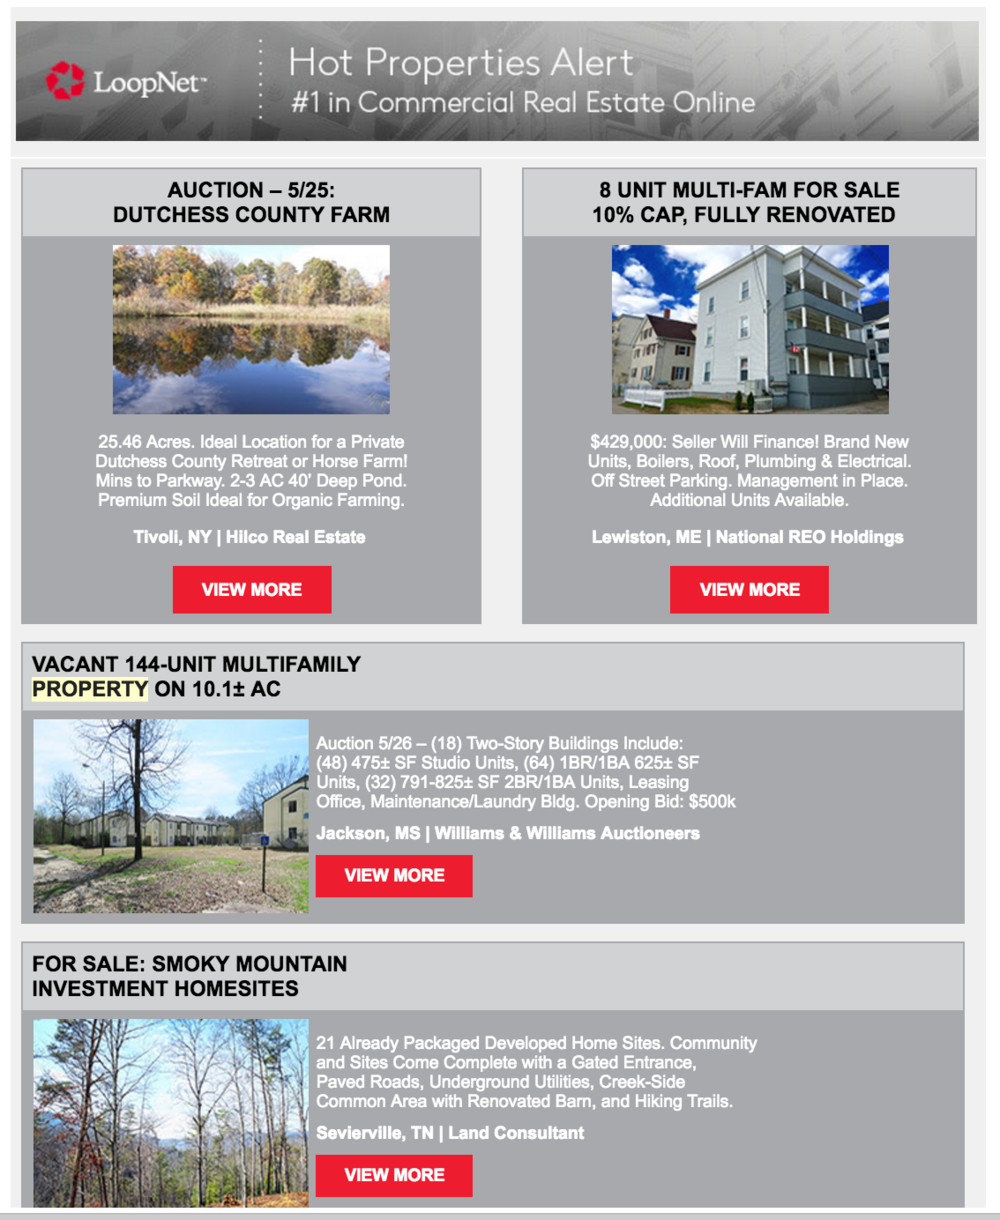 (Screenshot of a recent Hot Properties Bulletin.)